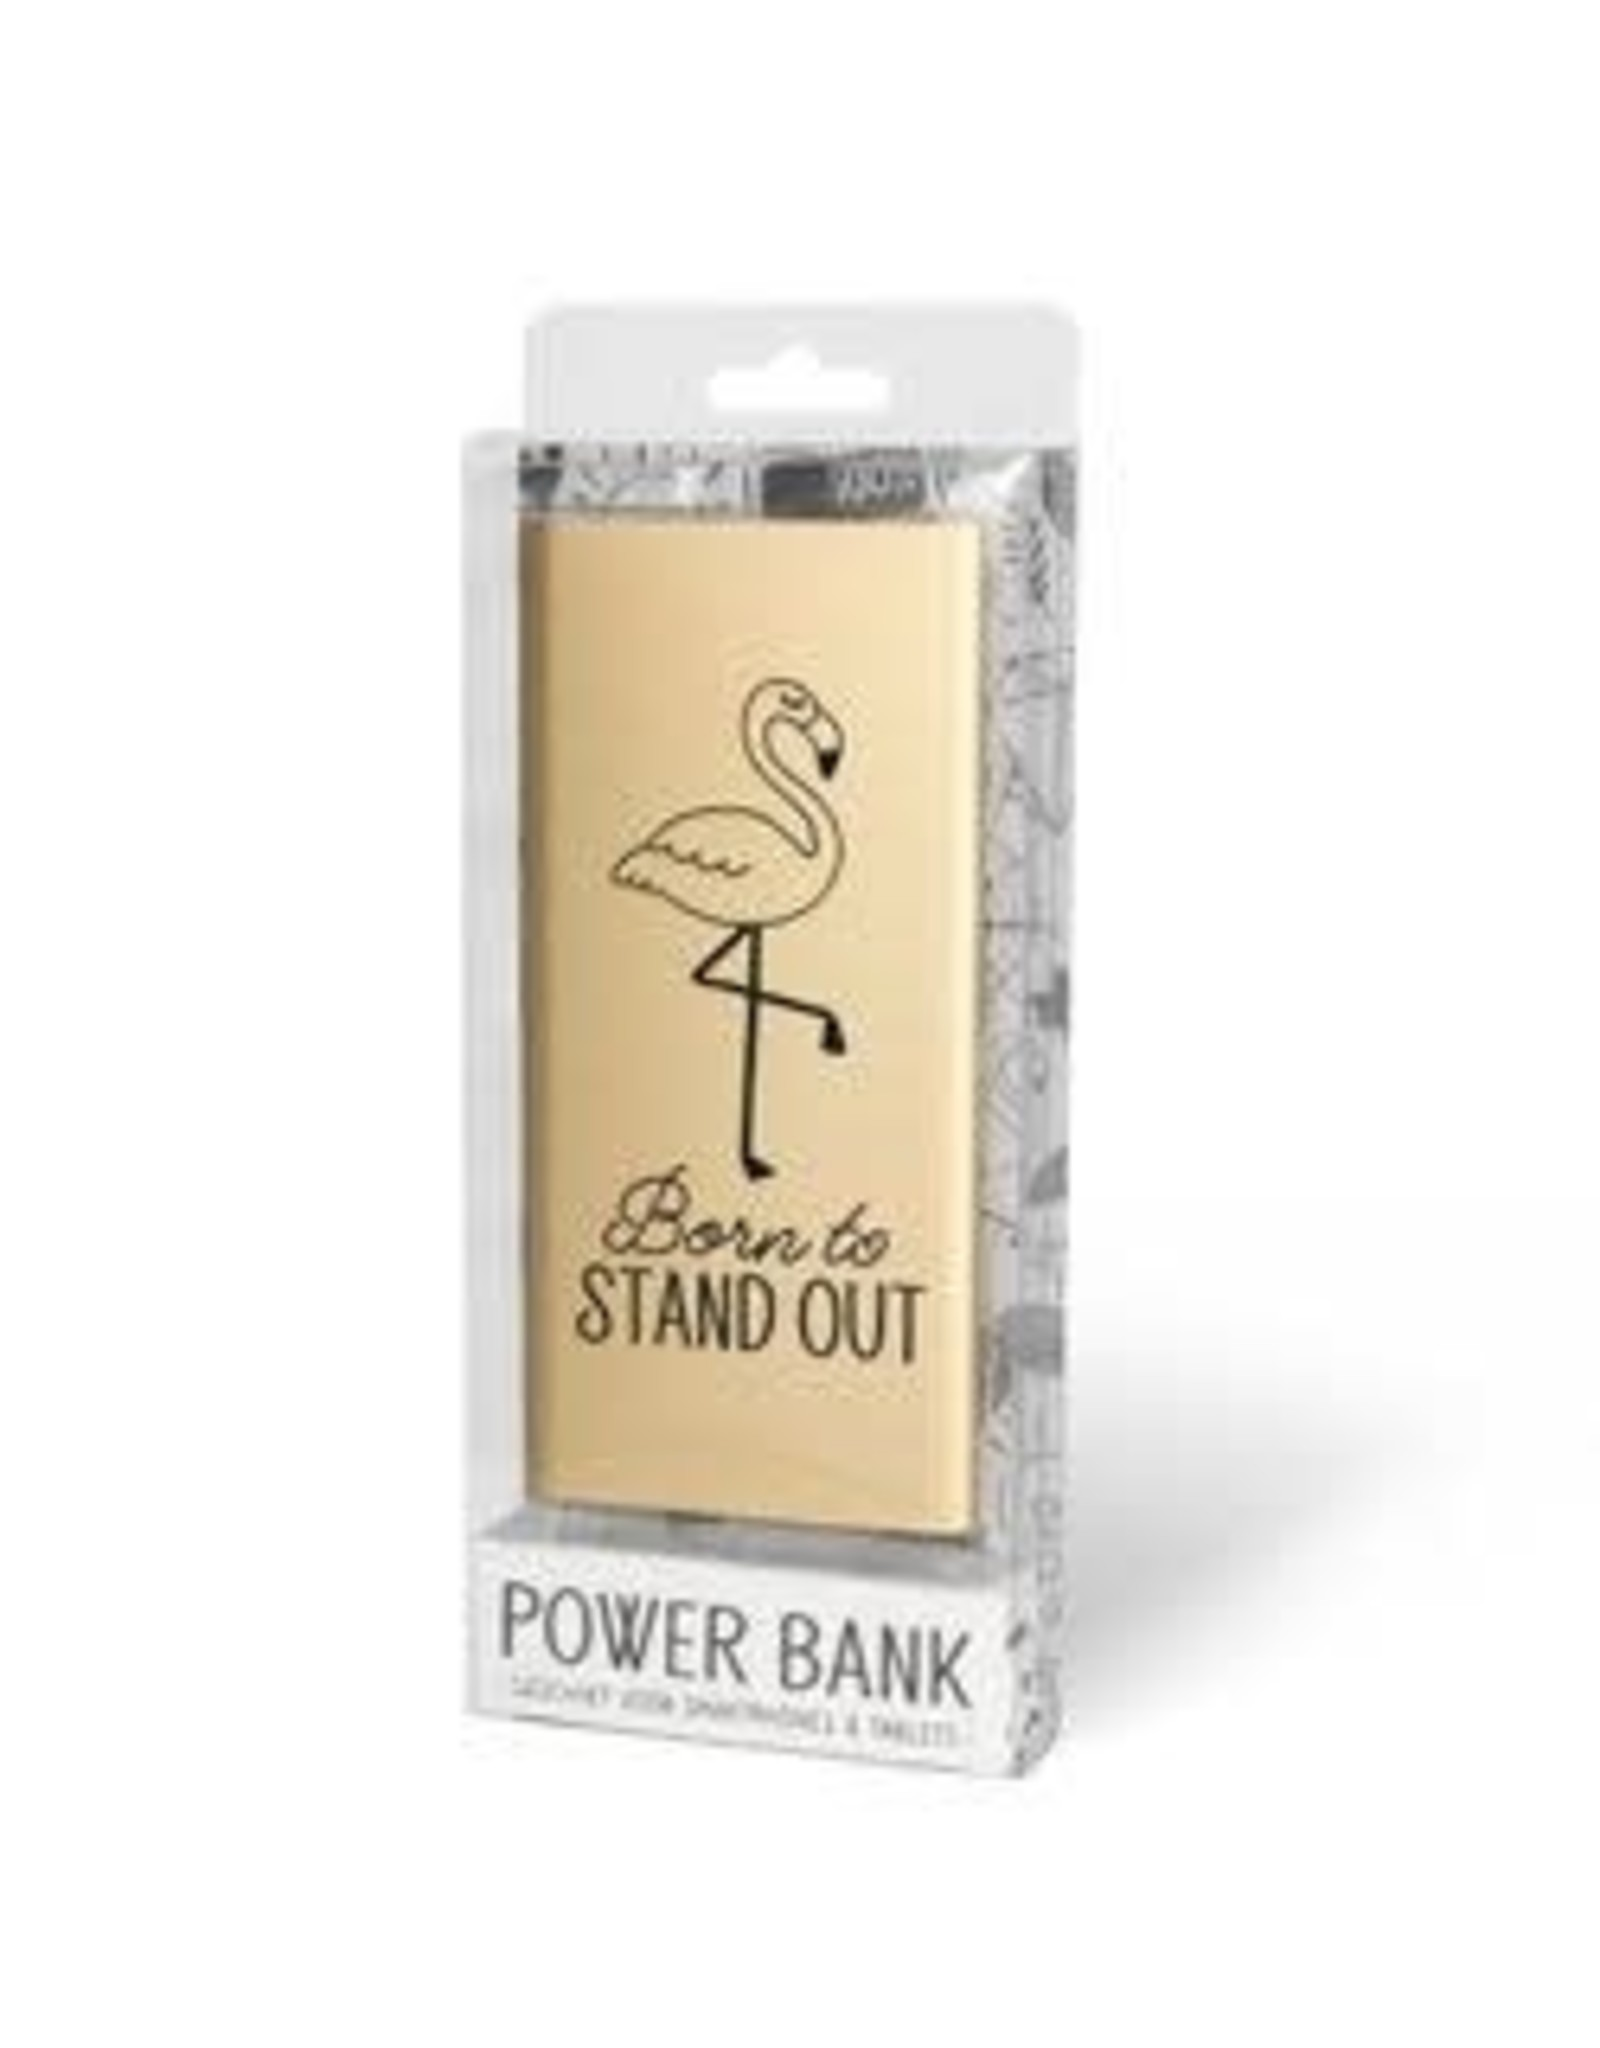 Miko powerbank - born to stand out